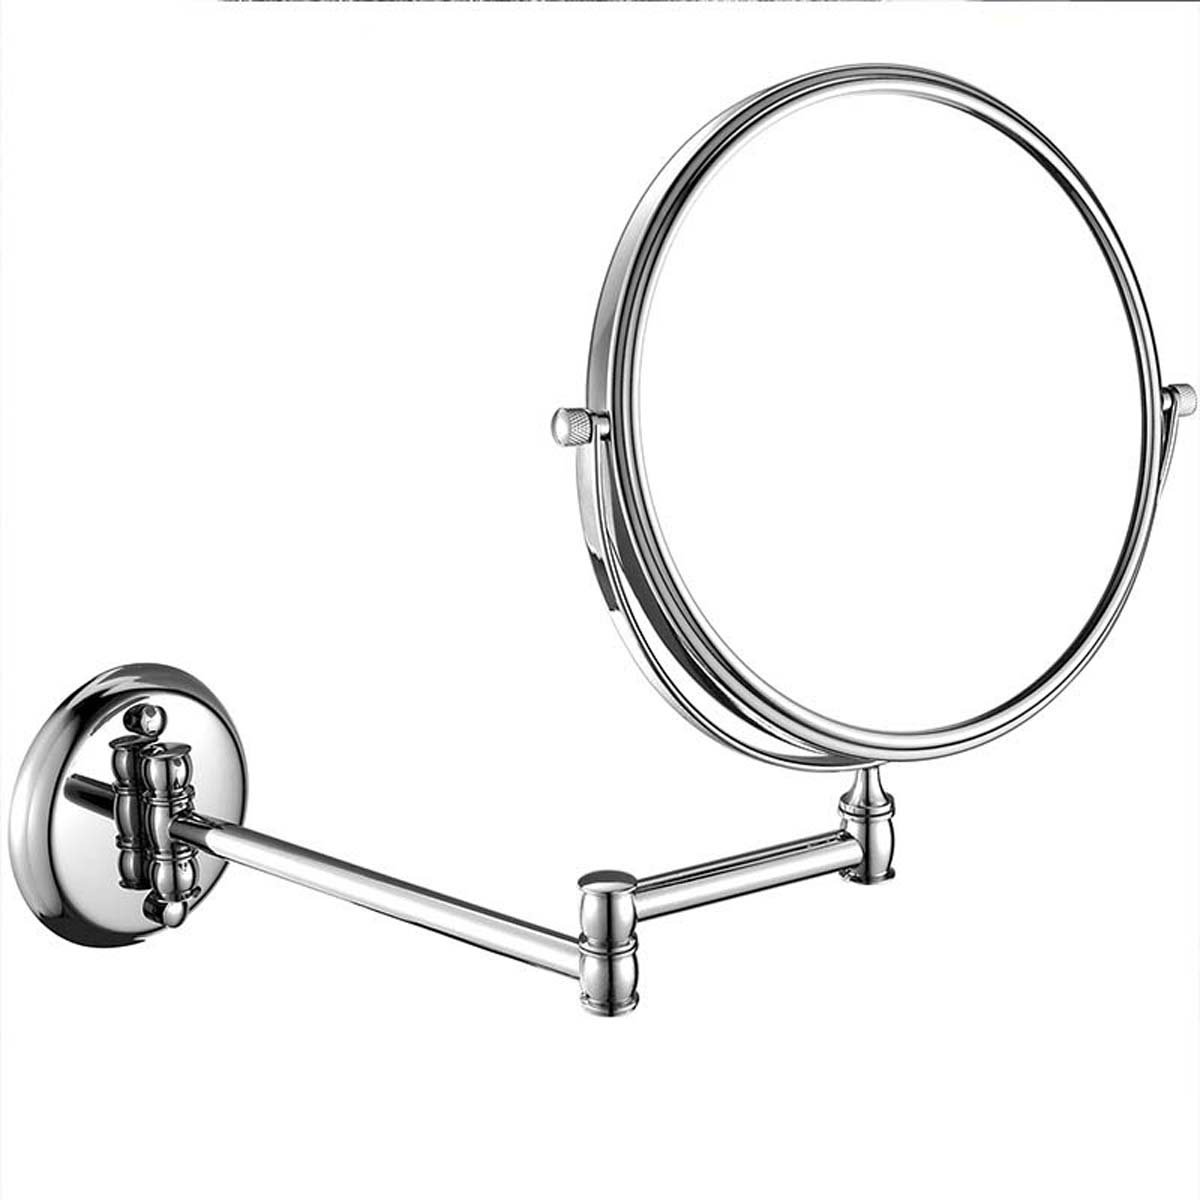 J&A Wall mounted collapsible makeup mirror, 8In creative metal rotating makeup mirror, double sided 1:3 magnification wall mount mirror, chrome synthesis